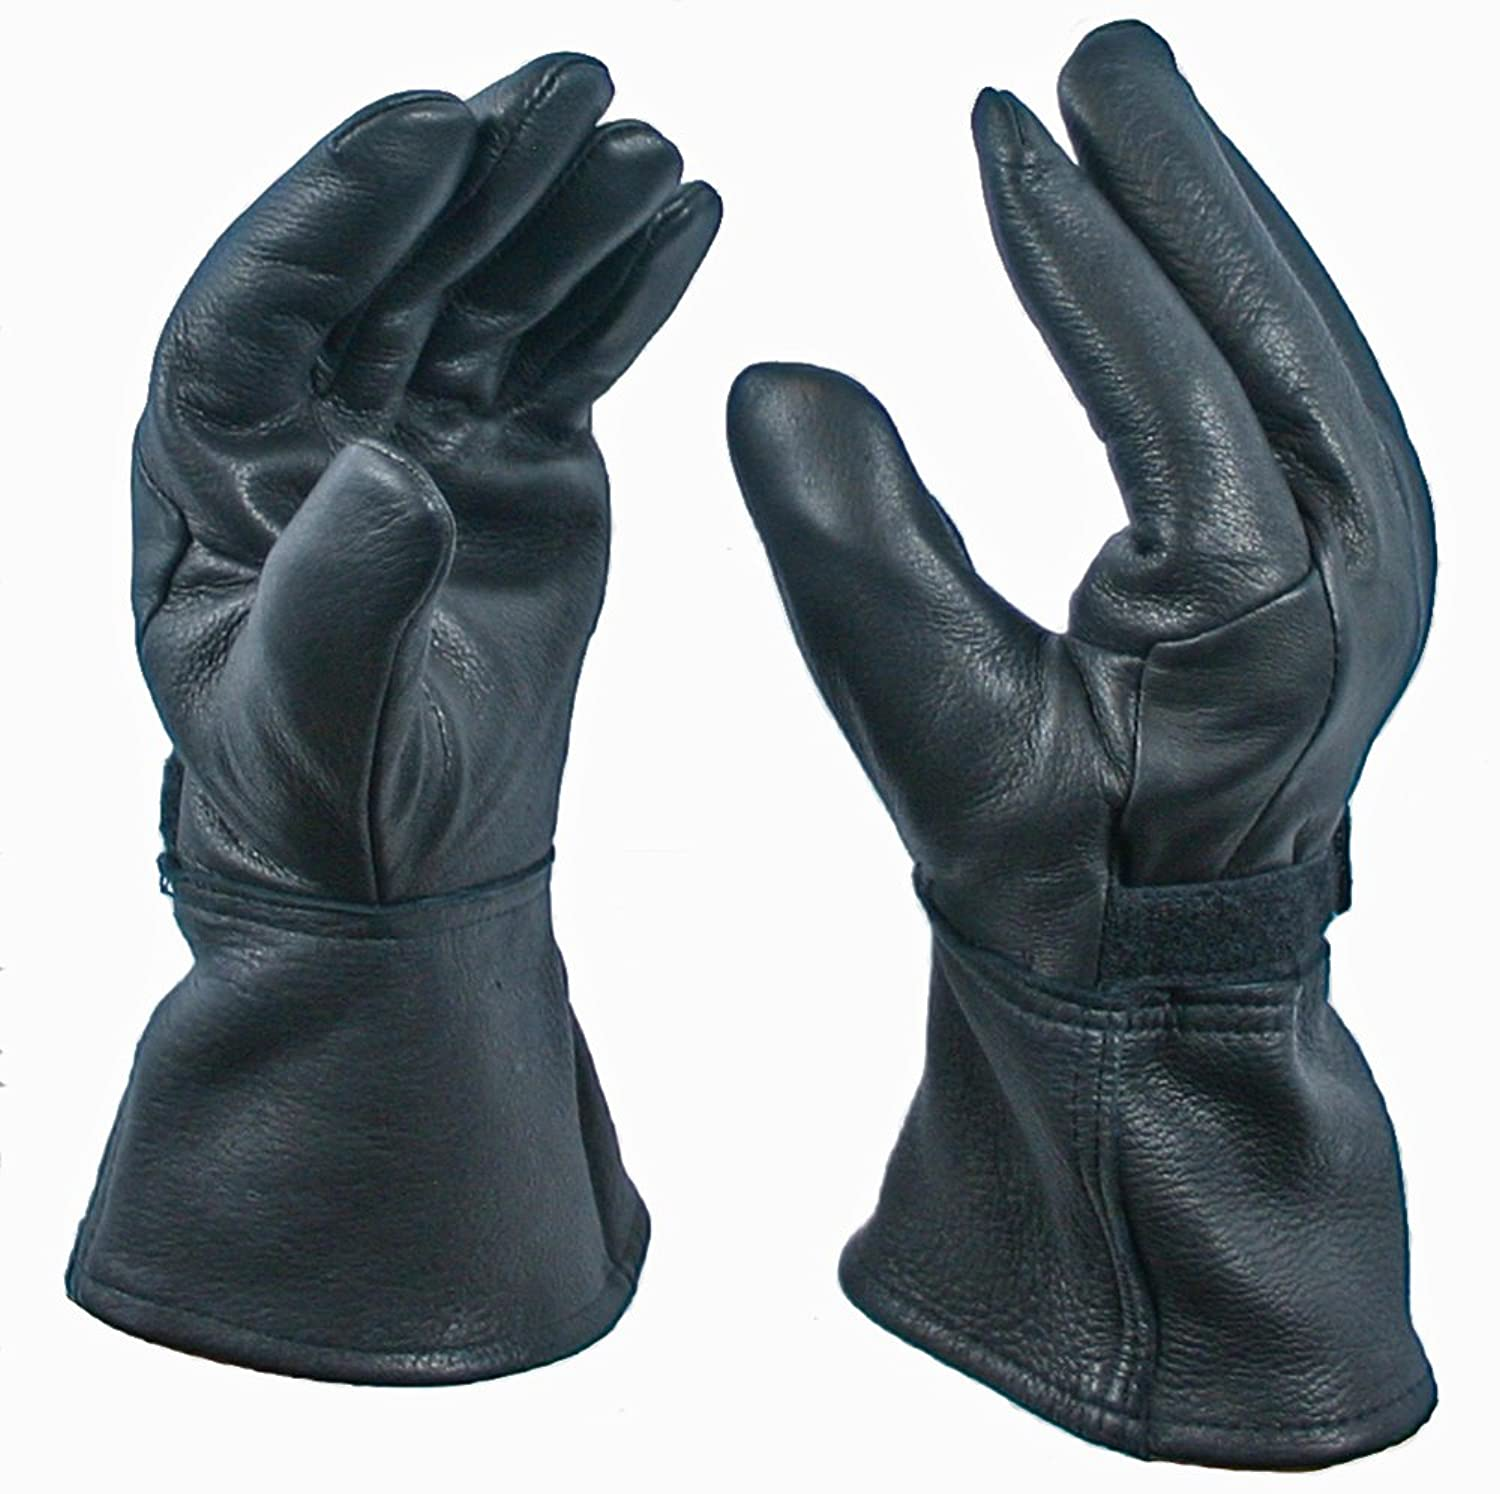 Motorcycle gloves thinsulate - Black Gauntlet Deerskin Motorcycle Glove With 40 Gram Thinsulate Lining At Amazon Men S Clothing Store Driving Gloves